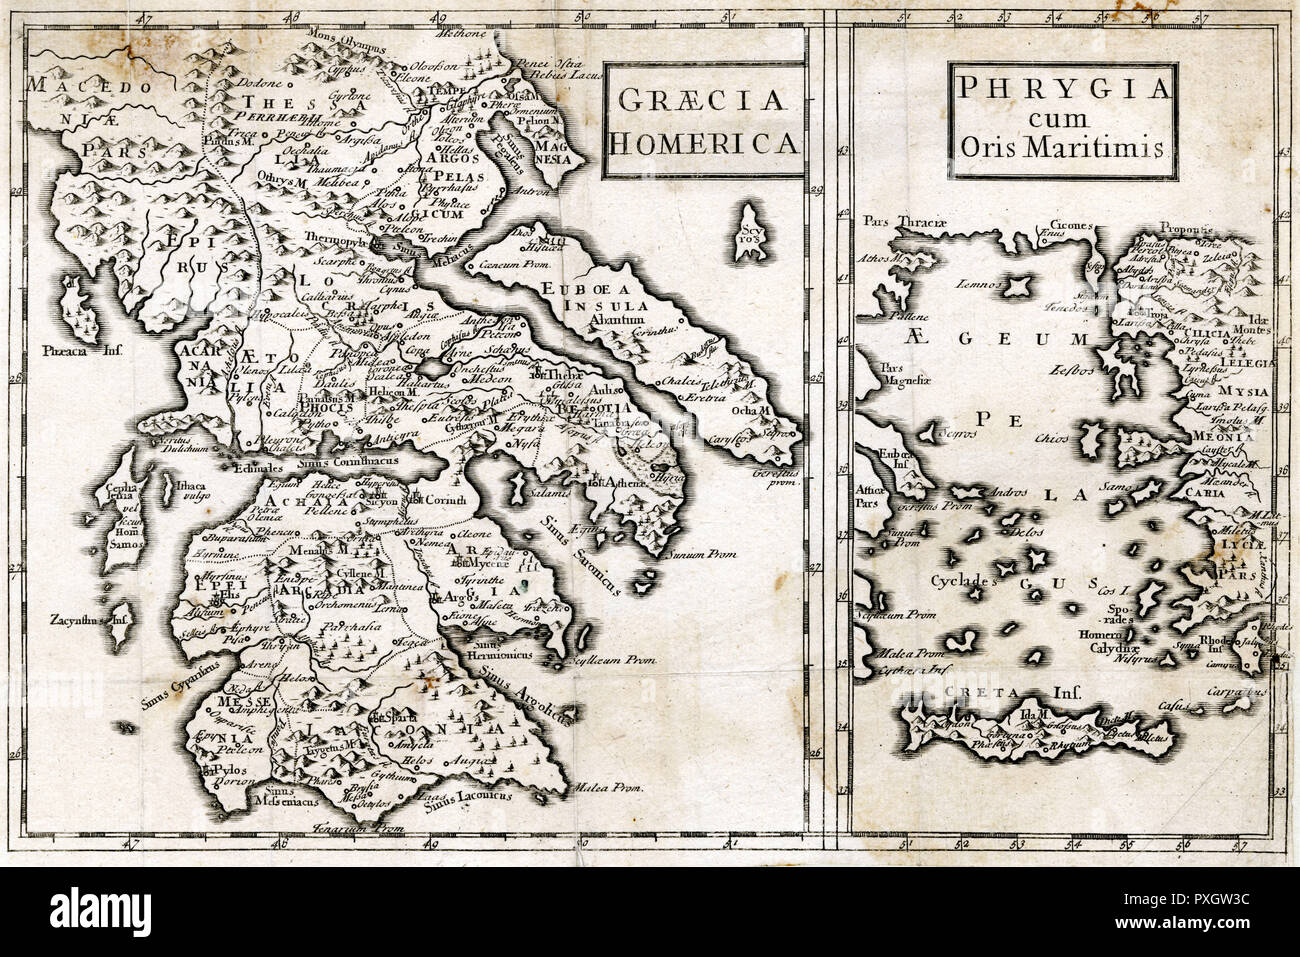 Map Of Ancient Greece Phrygia And Crete At The Time Of